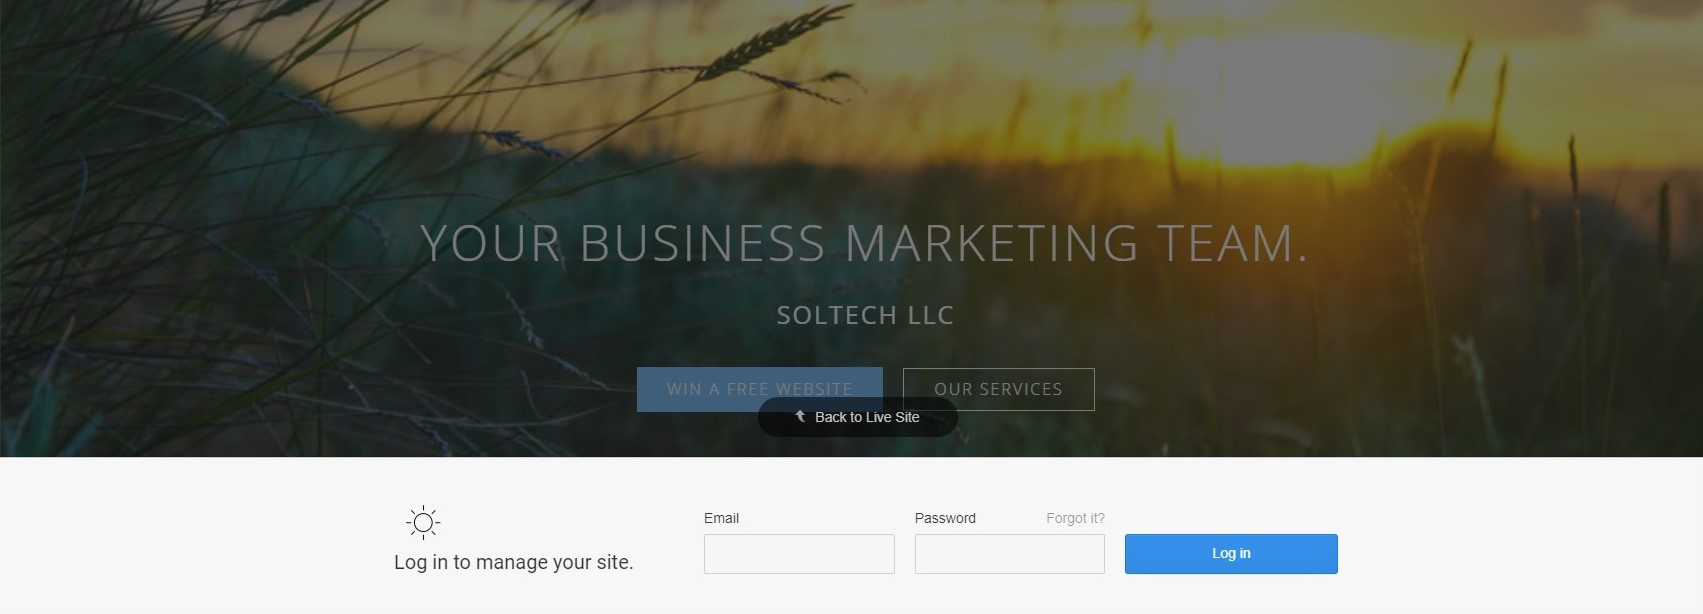 SolTech's Website Editor Compared with WP and Squarespace